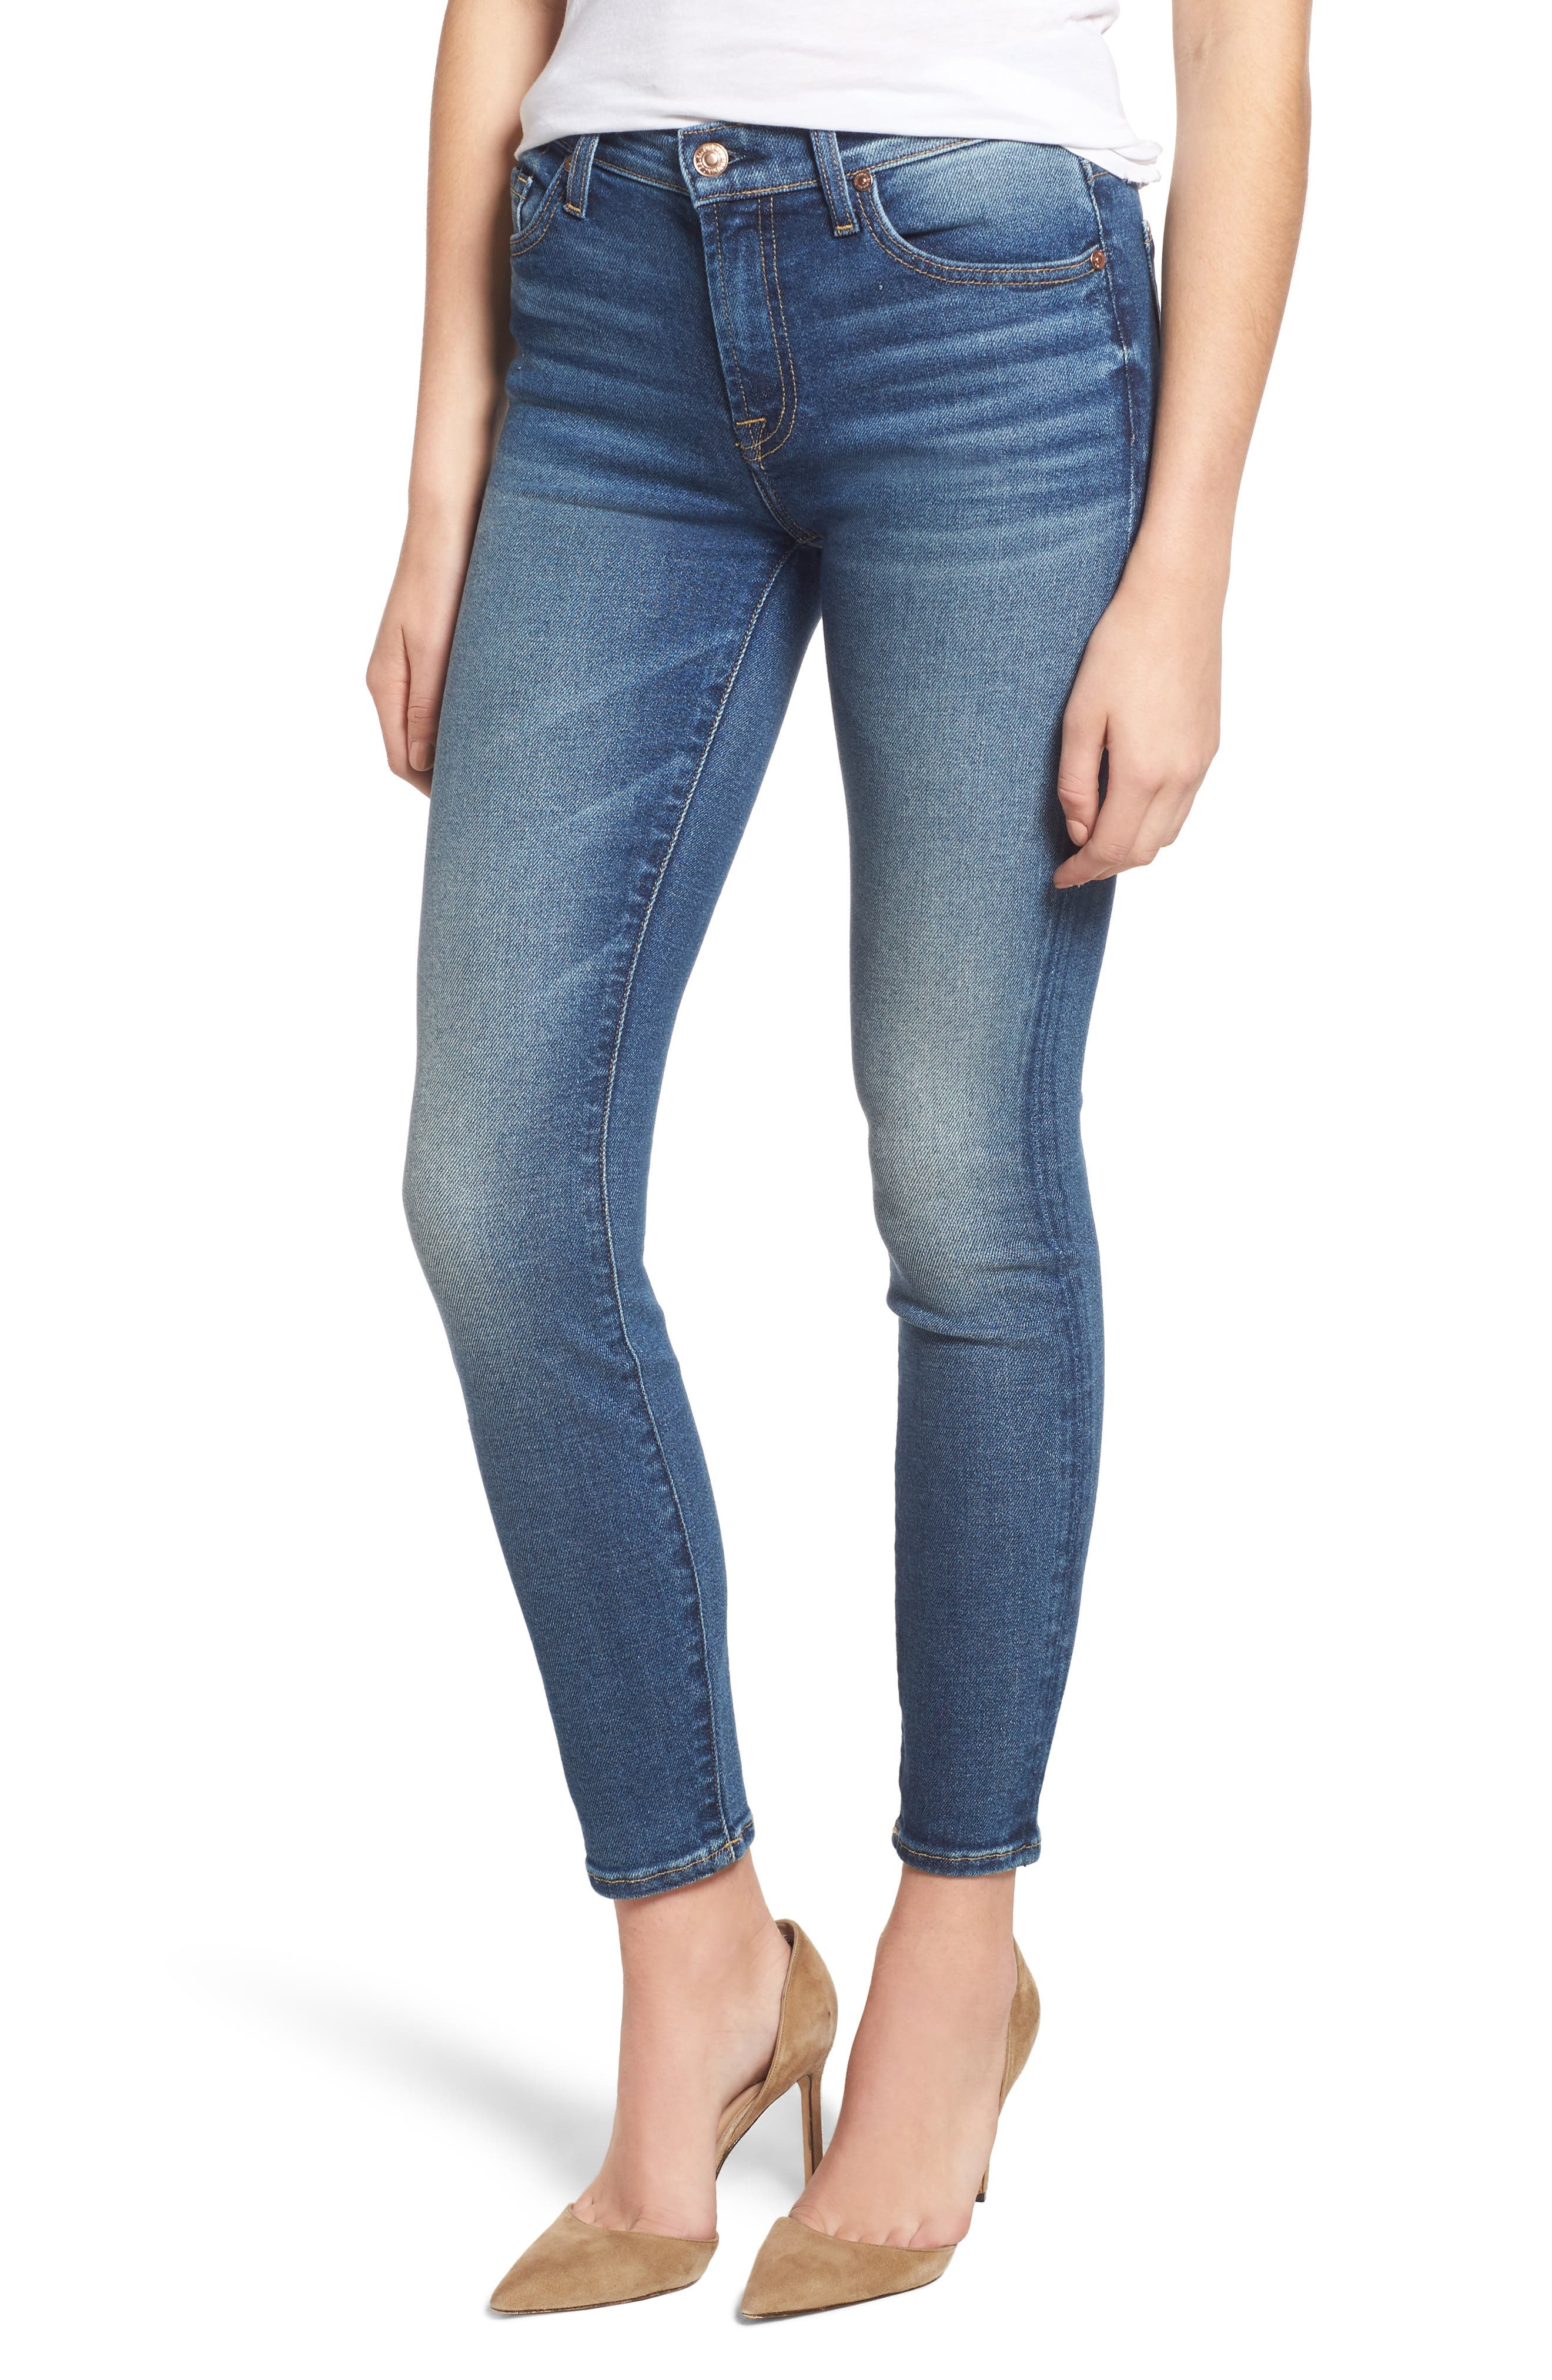 7 FOR ALL MANKIND<SUP>®</SUP>, Luxe Vintage The Ankle Skinny Jeans, Main thumbnail 1, color, LUXE VINTAGE FEMME